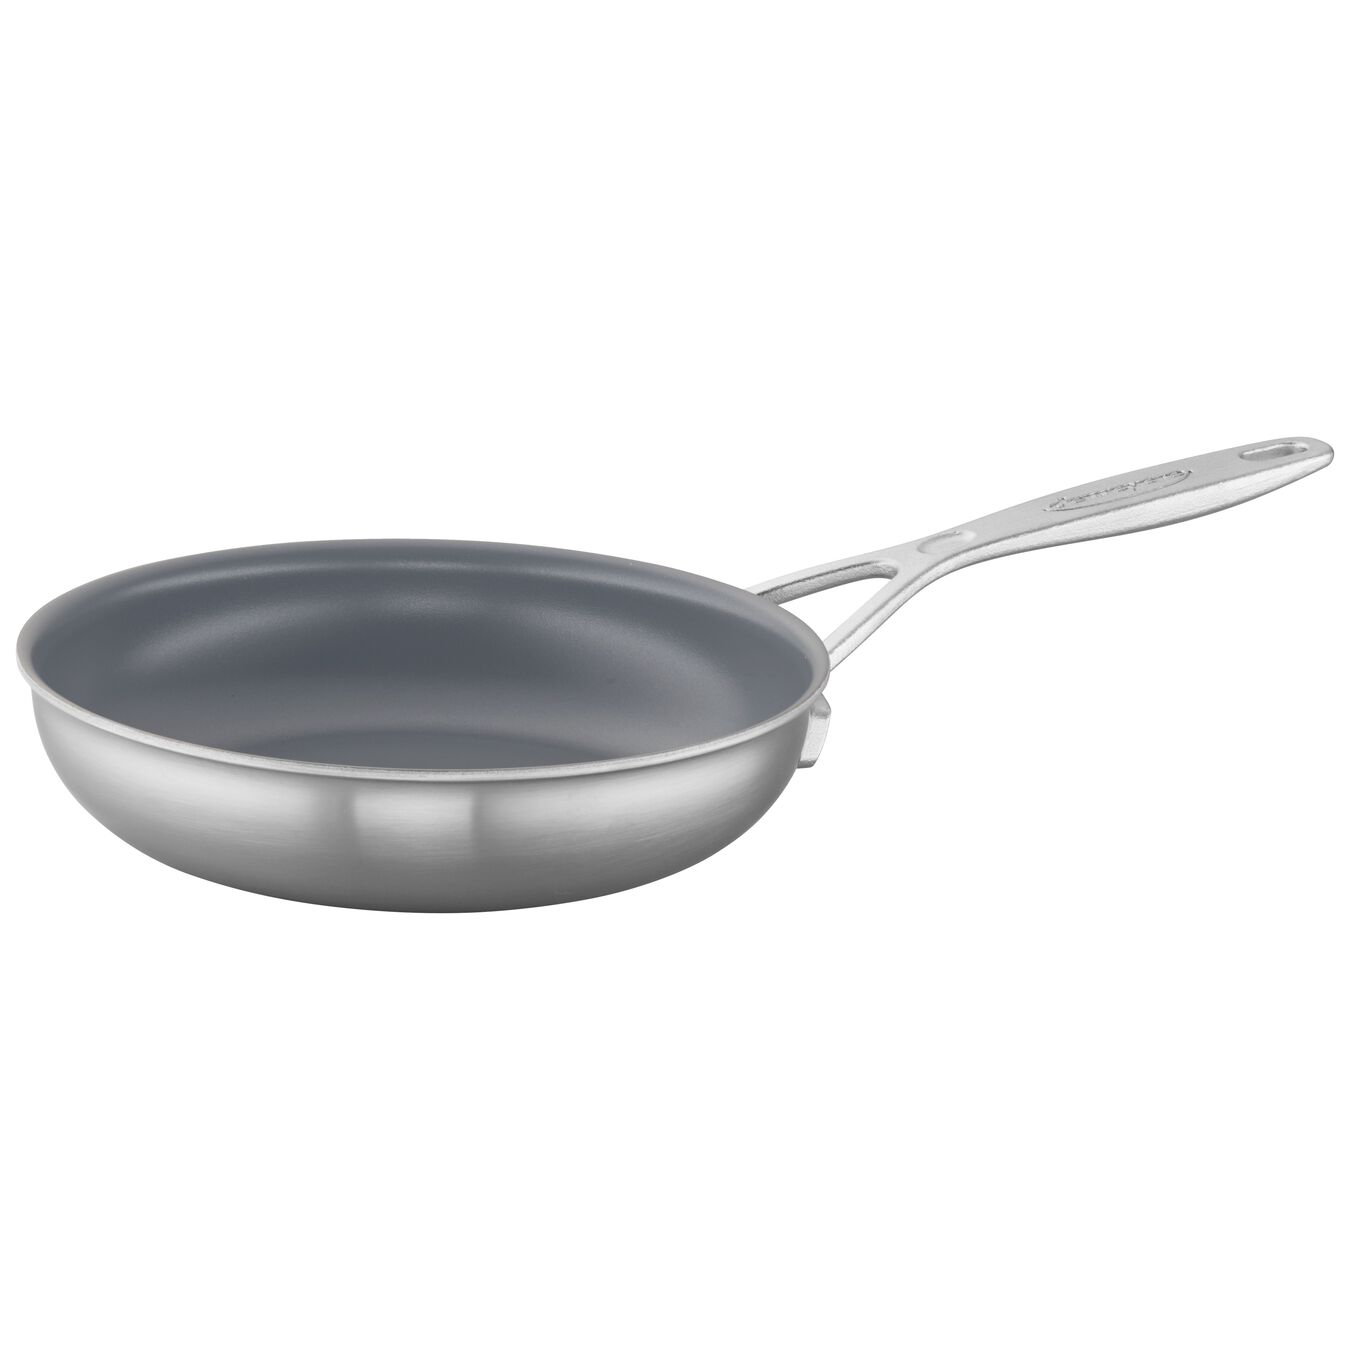 8-inch, 18/10 Stainless Steel, Ceramic, Frying pan,,large 2